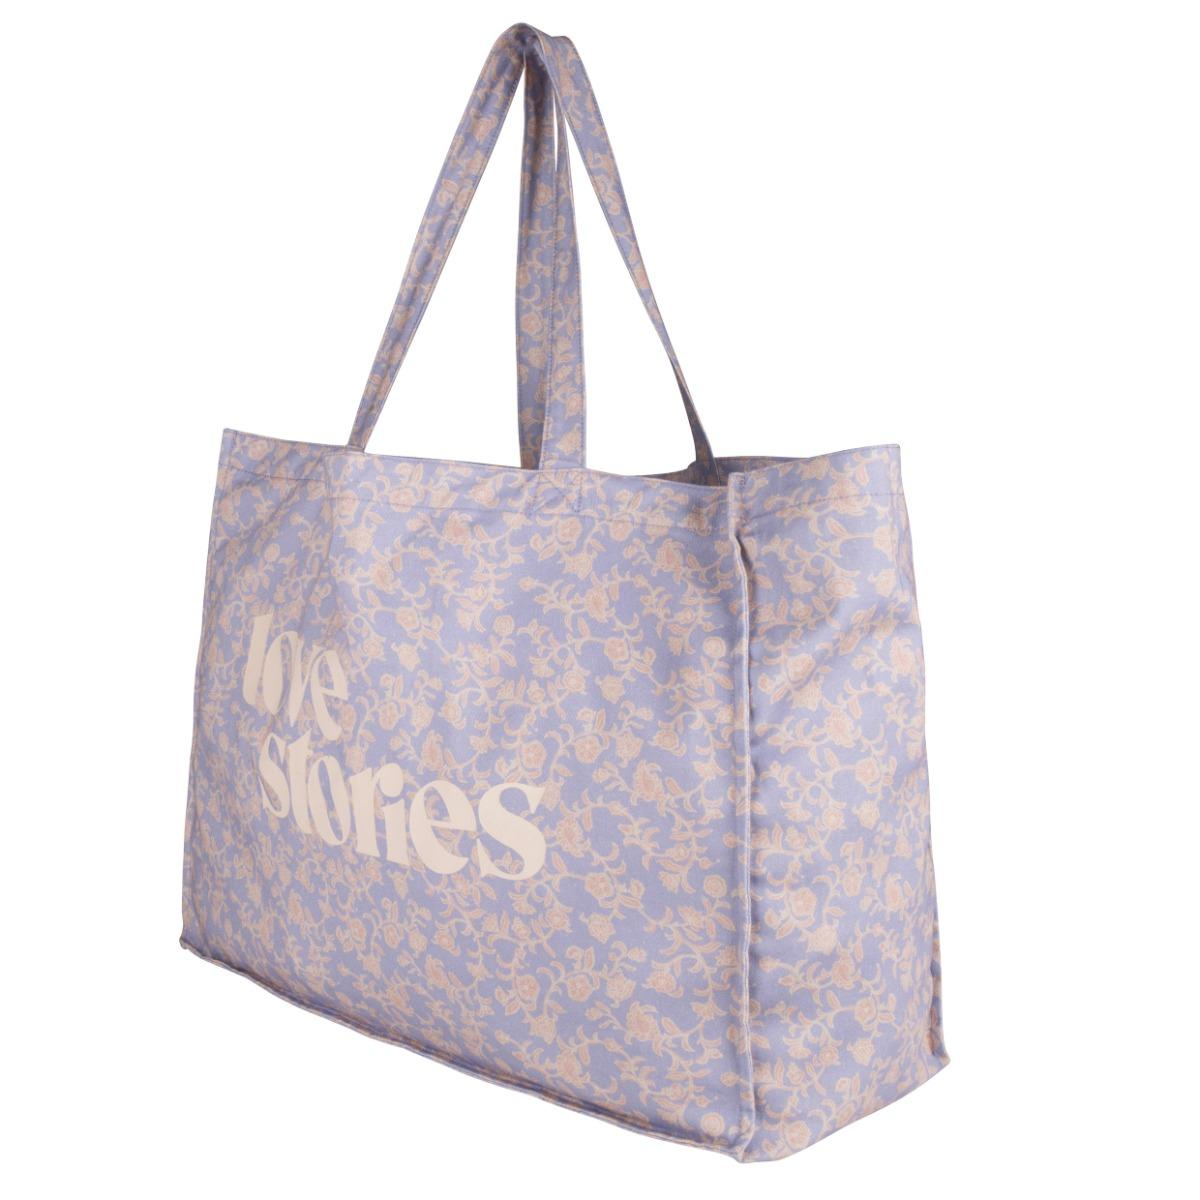 Love stories Twill Tote Bag